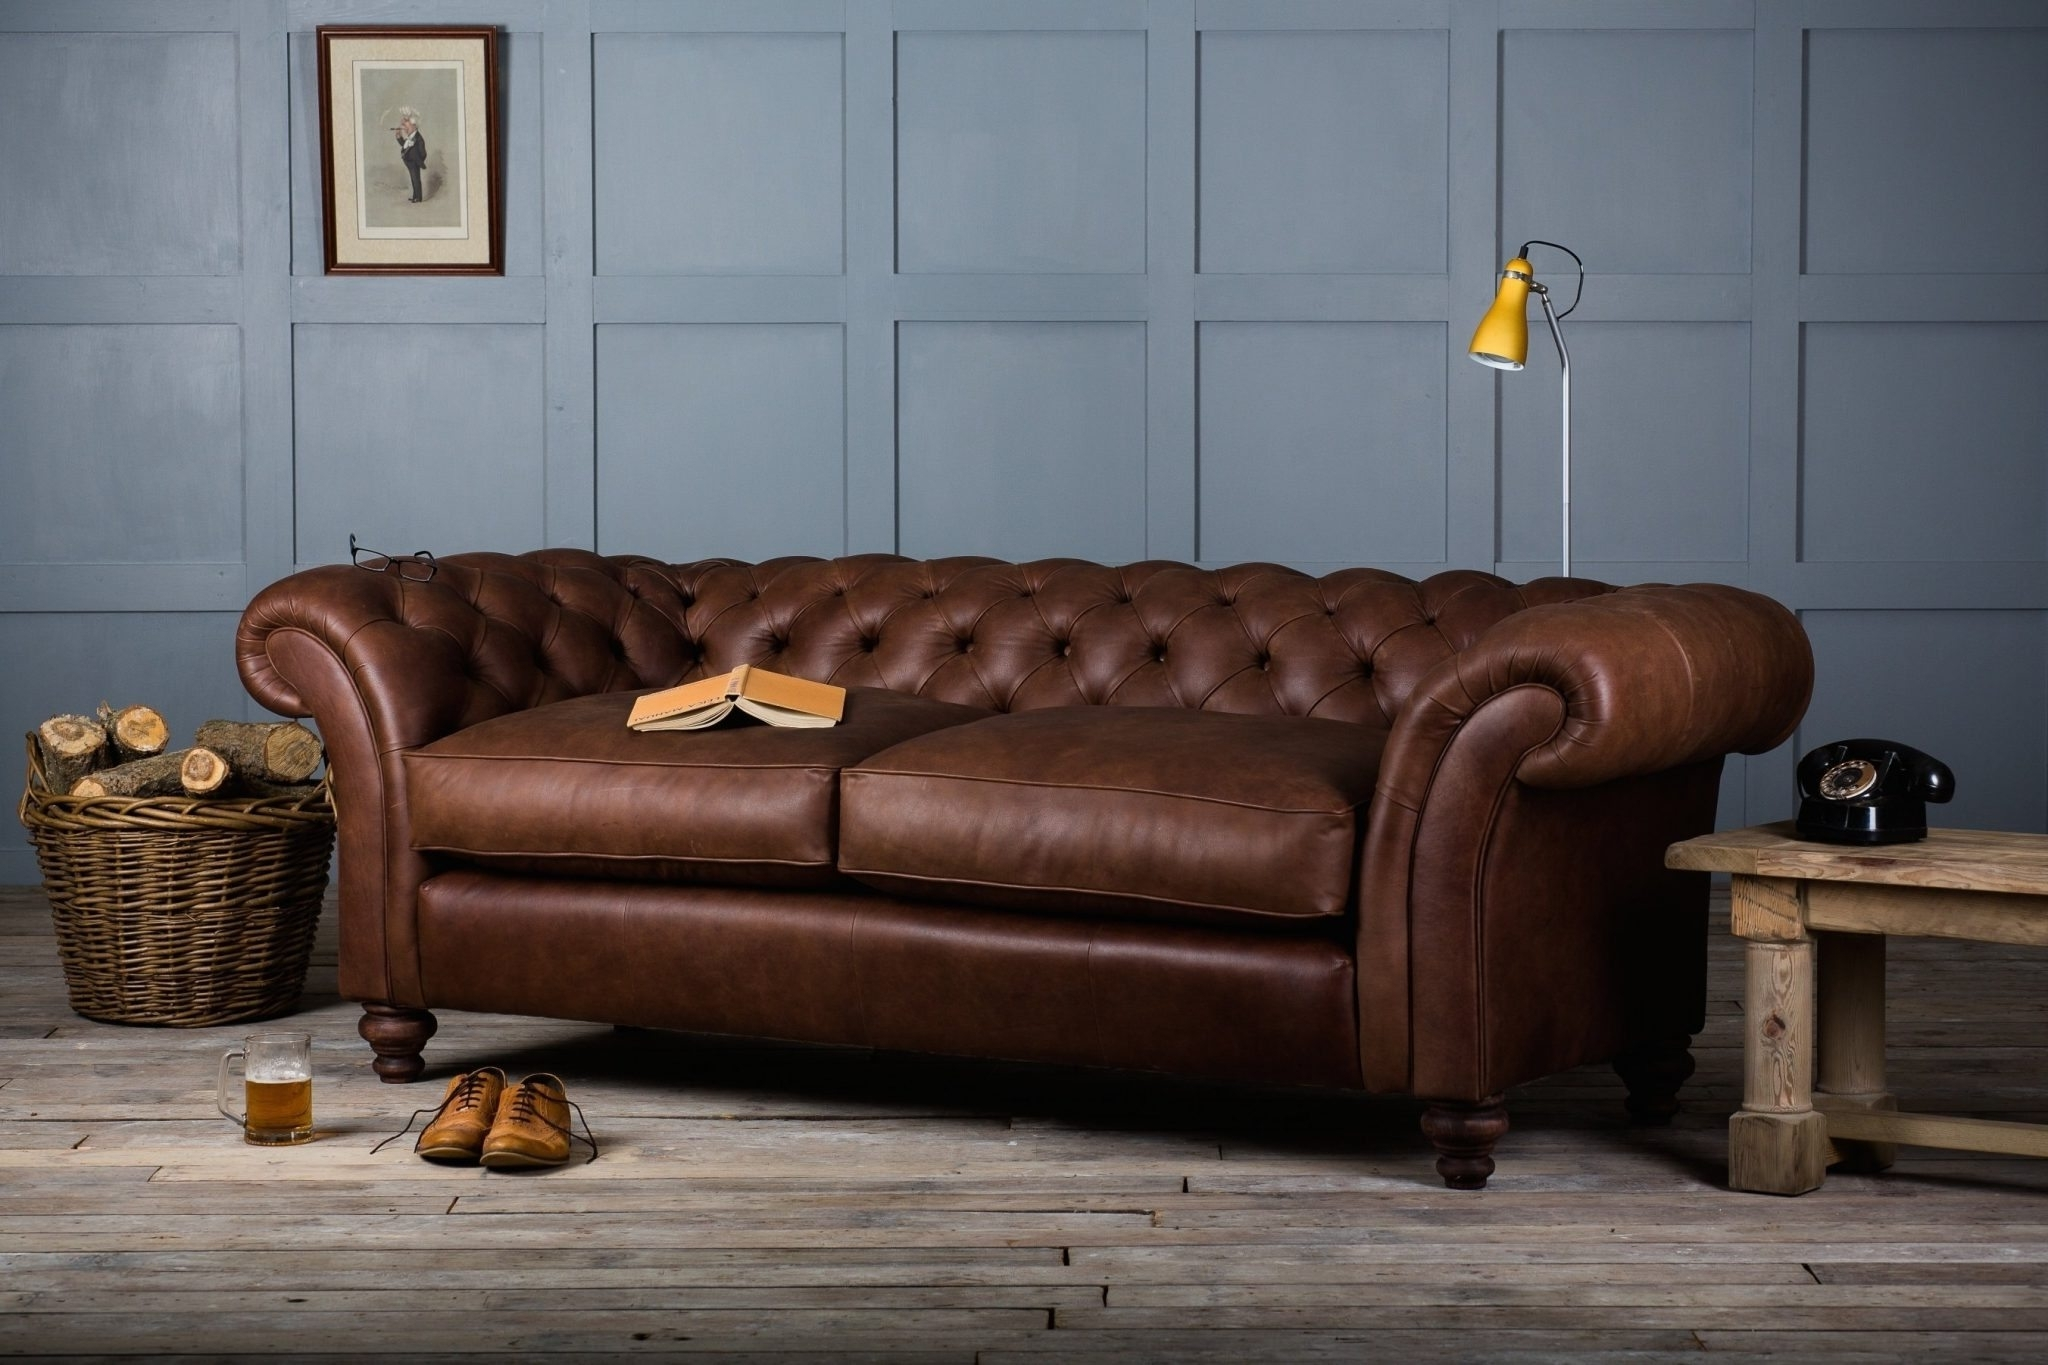 Furniture: Tufted Full Grain Leather Sofa With Wooden Flooring And For Famous Full Grain Leather Sofas (View 3 of 15)